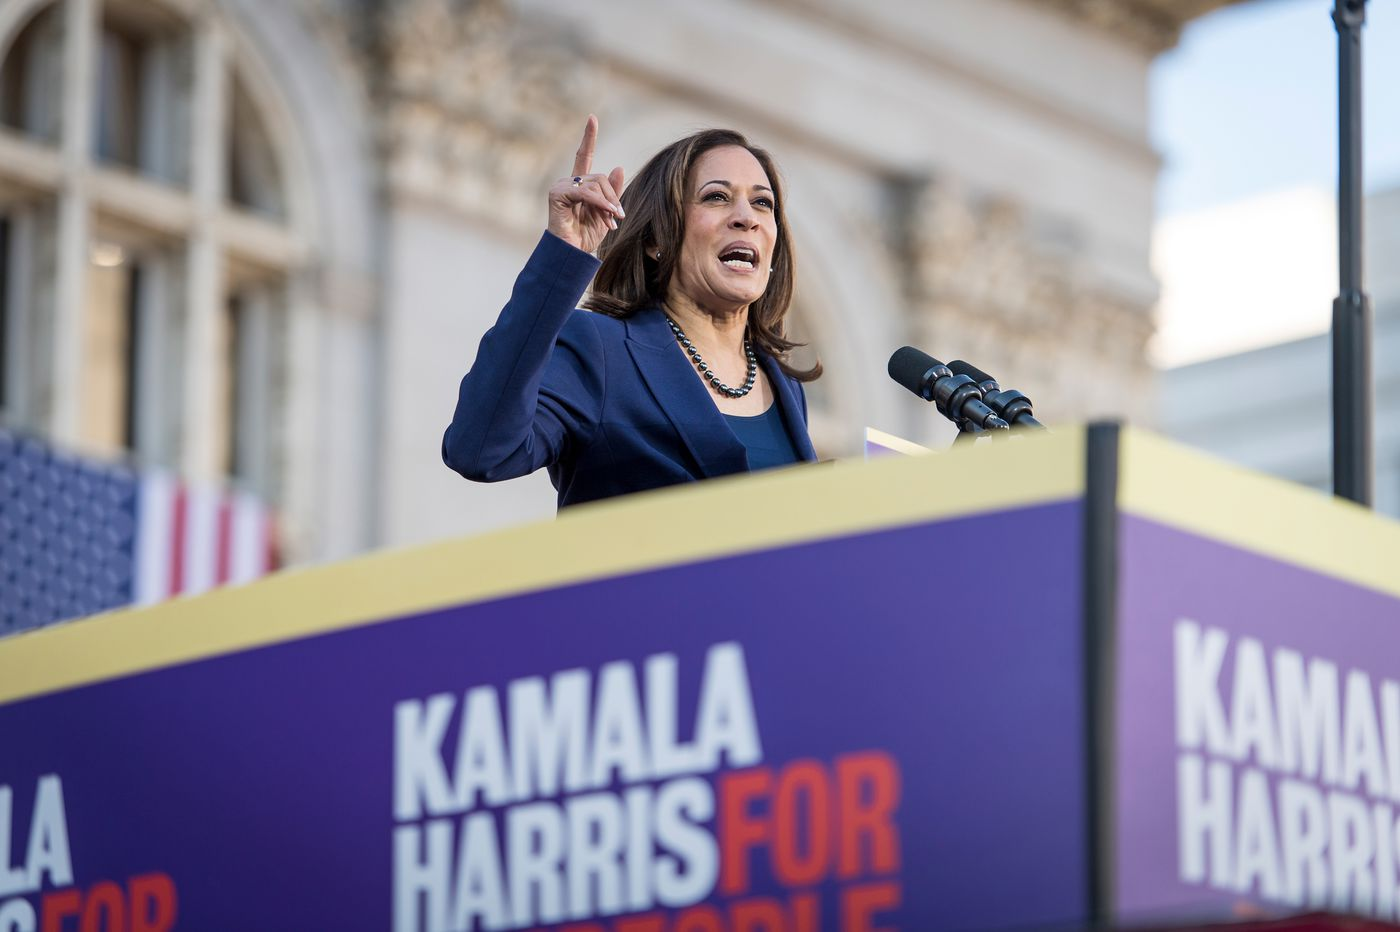 Kamala Harris wants marijuana legalized, cites her Jamaican roots